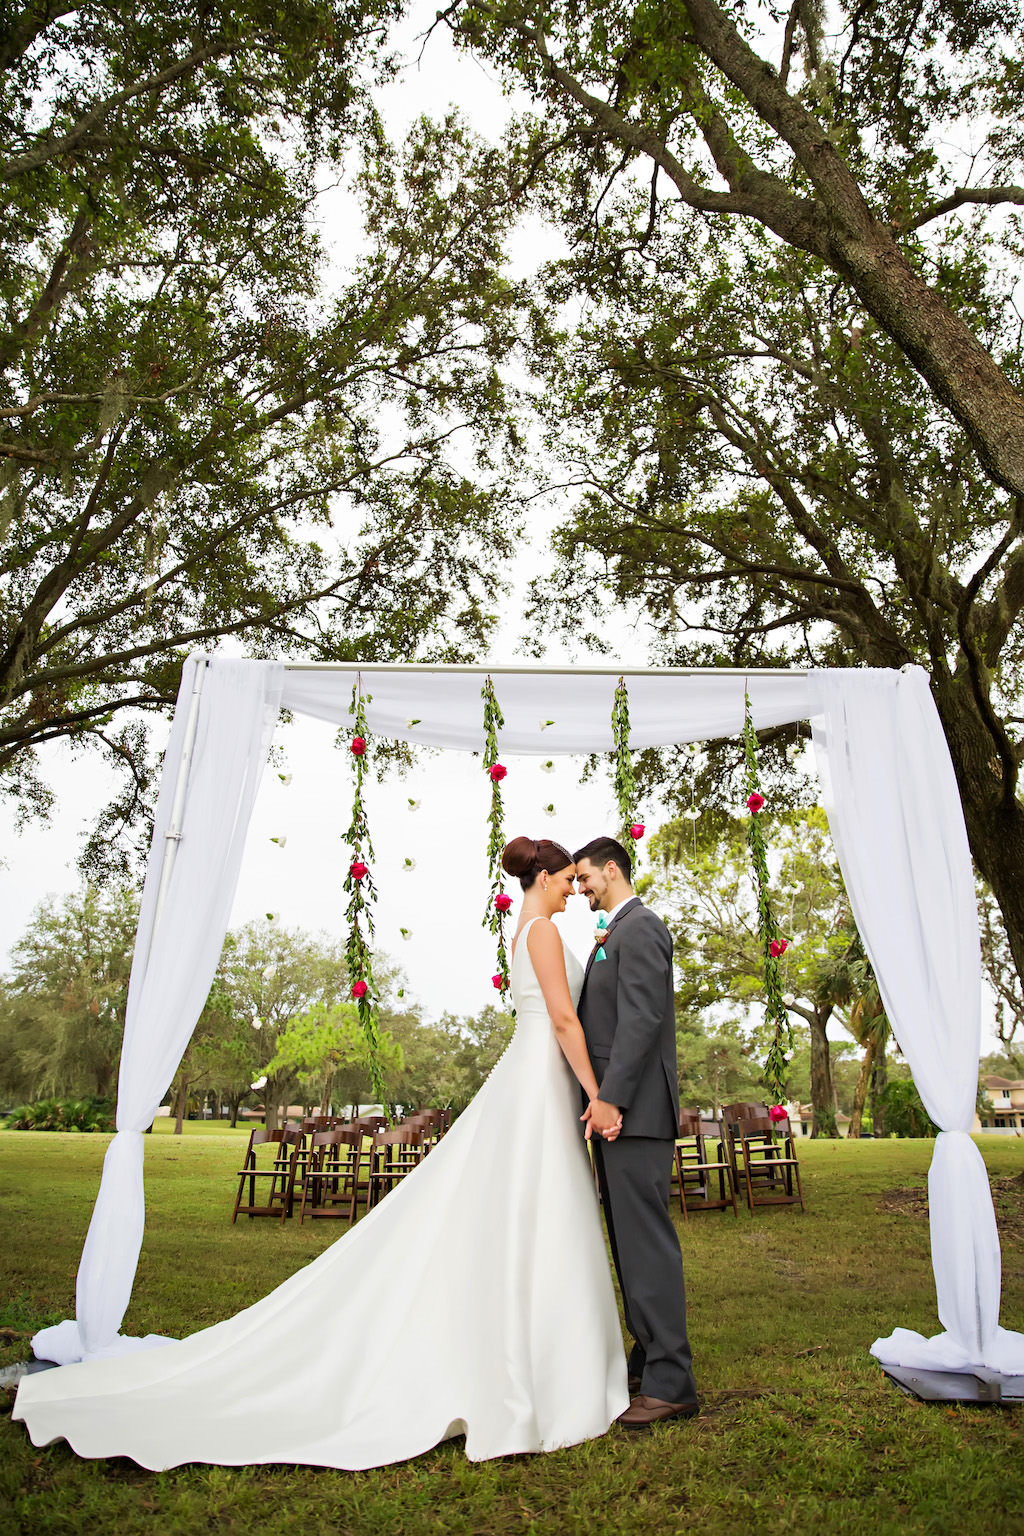 Outdoor Wedding Ceremony Portrait with Arch with White Drapery and Hanging Greenery Garlands with Red Roses and White Flowers and Wooden Folding Chairs   Clearwater Golf Course Wedding Venue Countryside Country Club   Planner Special Moments Event Planning   Florist and Decor Gabro Event Services